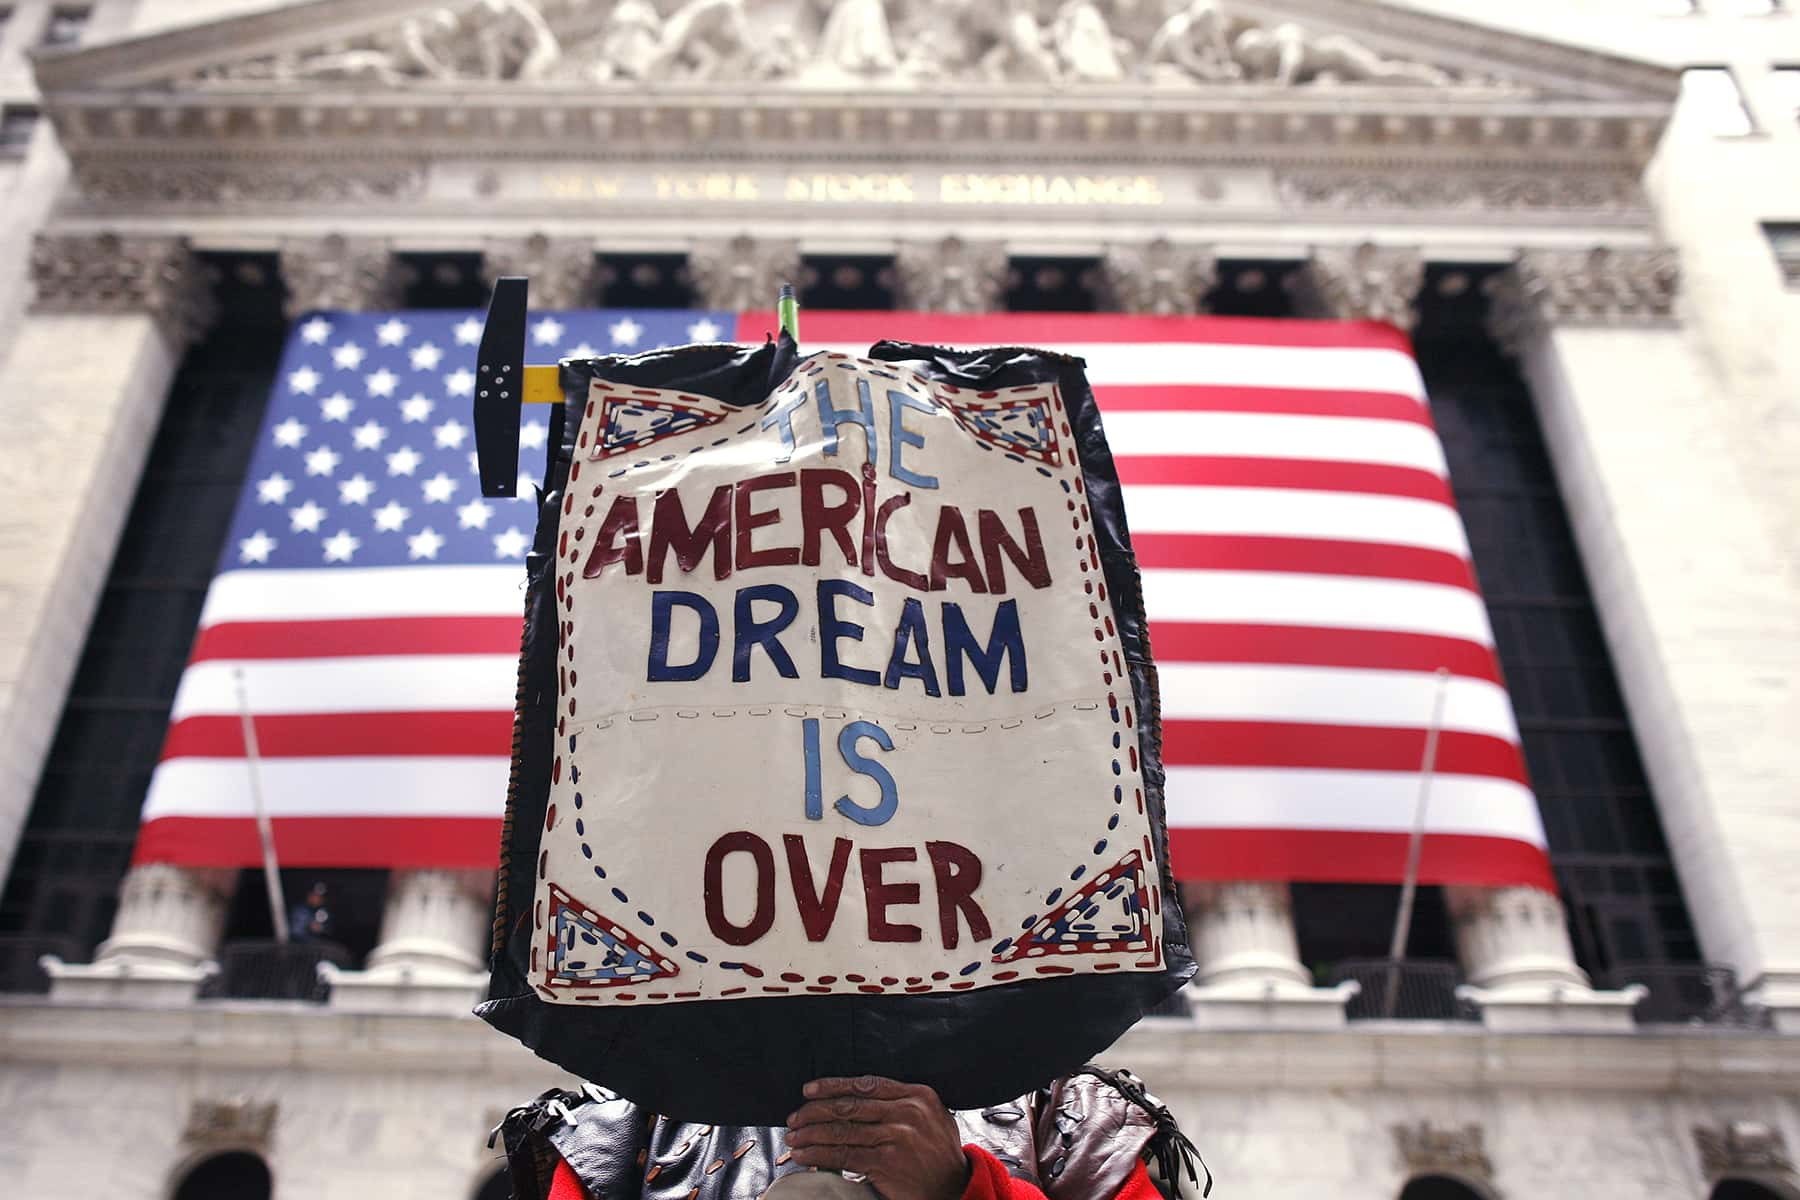 A century of hope in the American Dream and a sad reality of its demise for  many Americans | The Milwaukee Independent